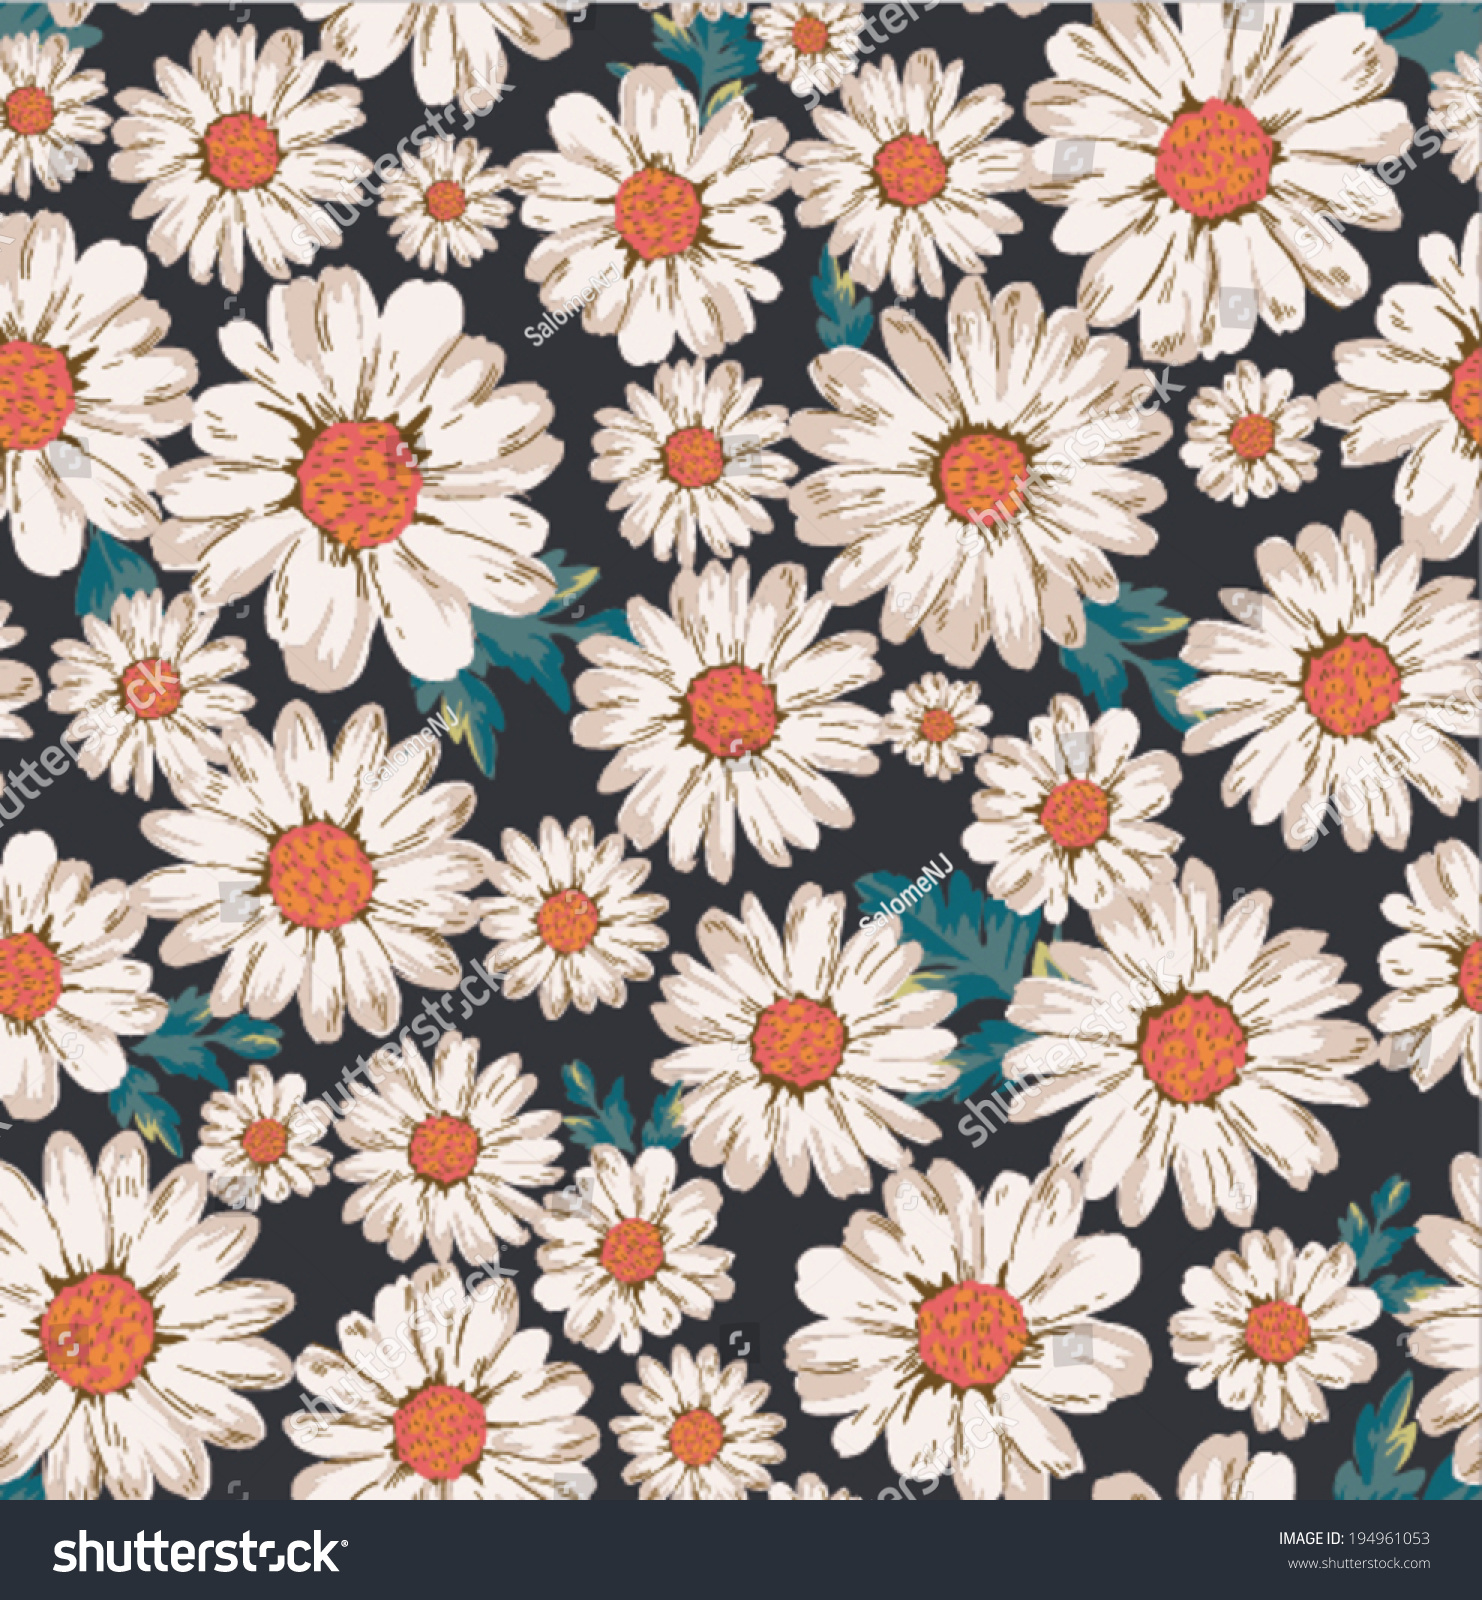 Daisy pattern wallpaper - photo#25